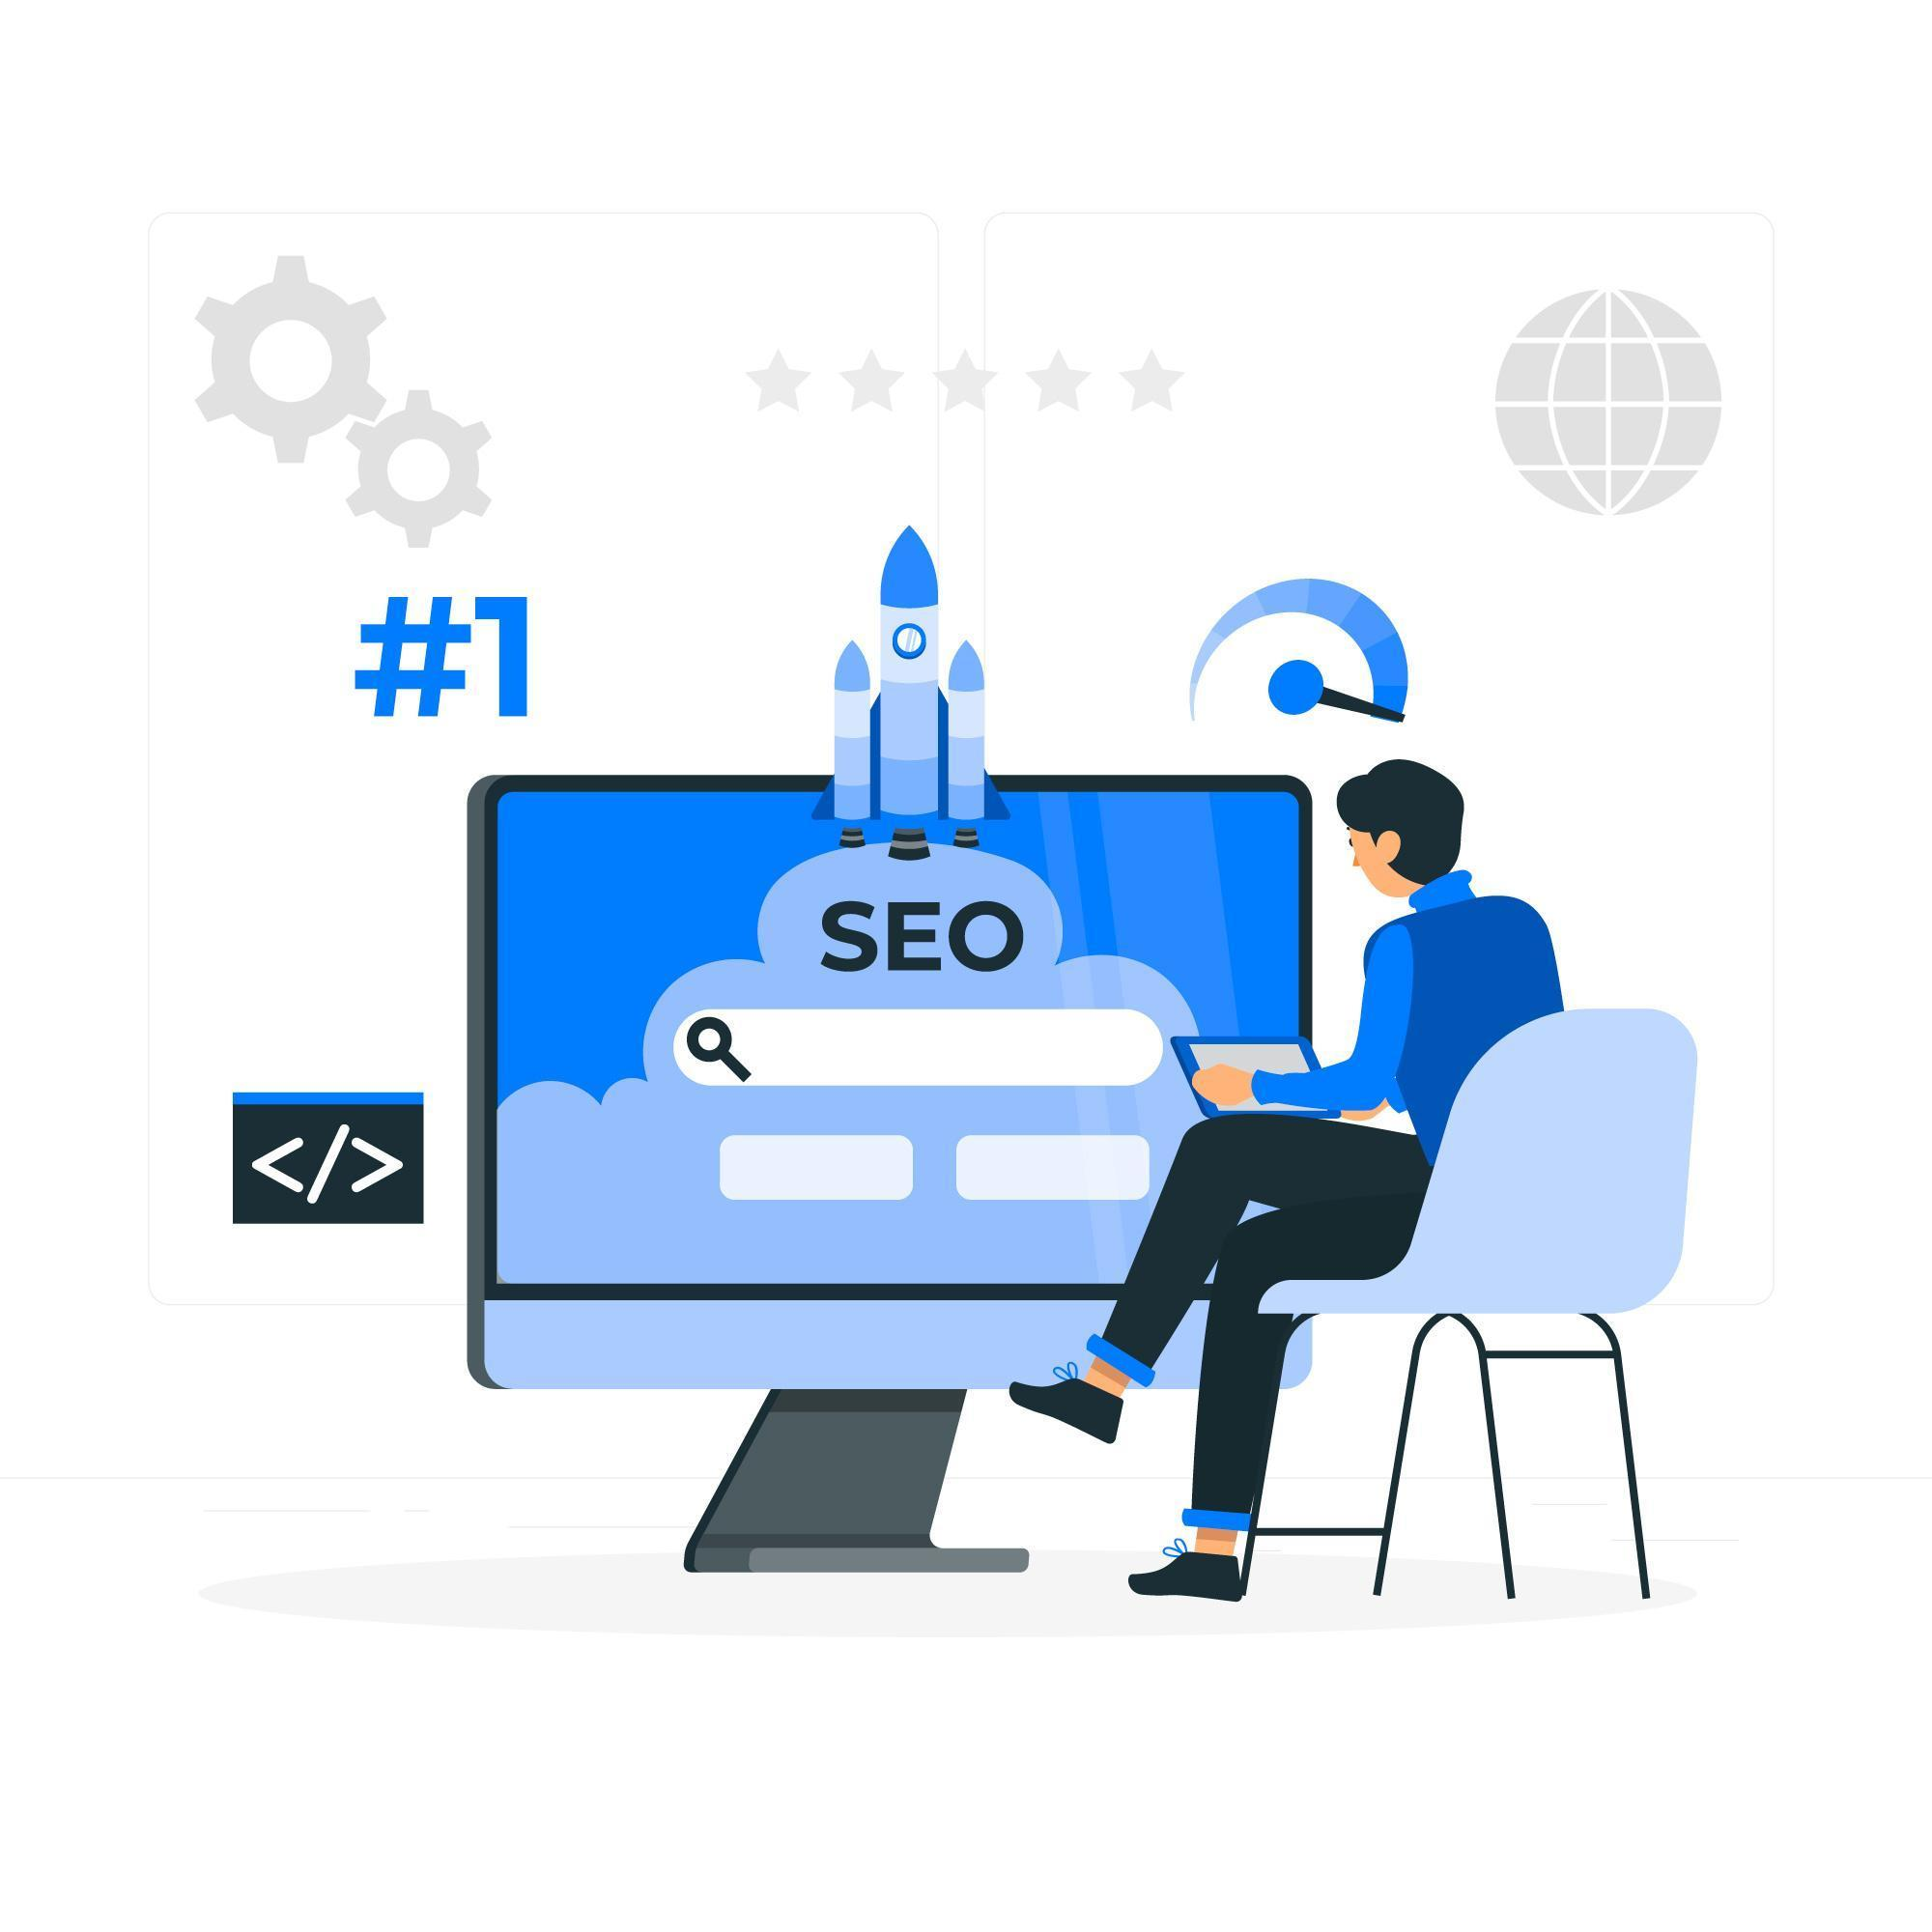 Top 3 Ways to Build a Winning SEO Strategy On a Small Budget